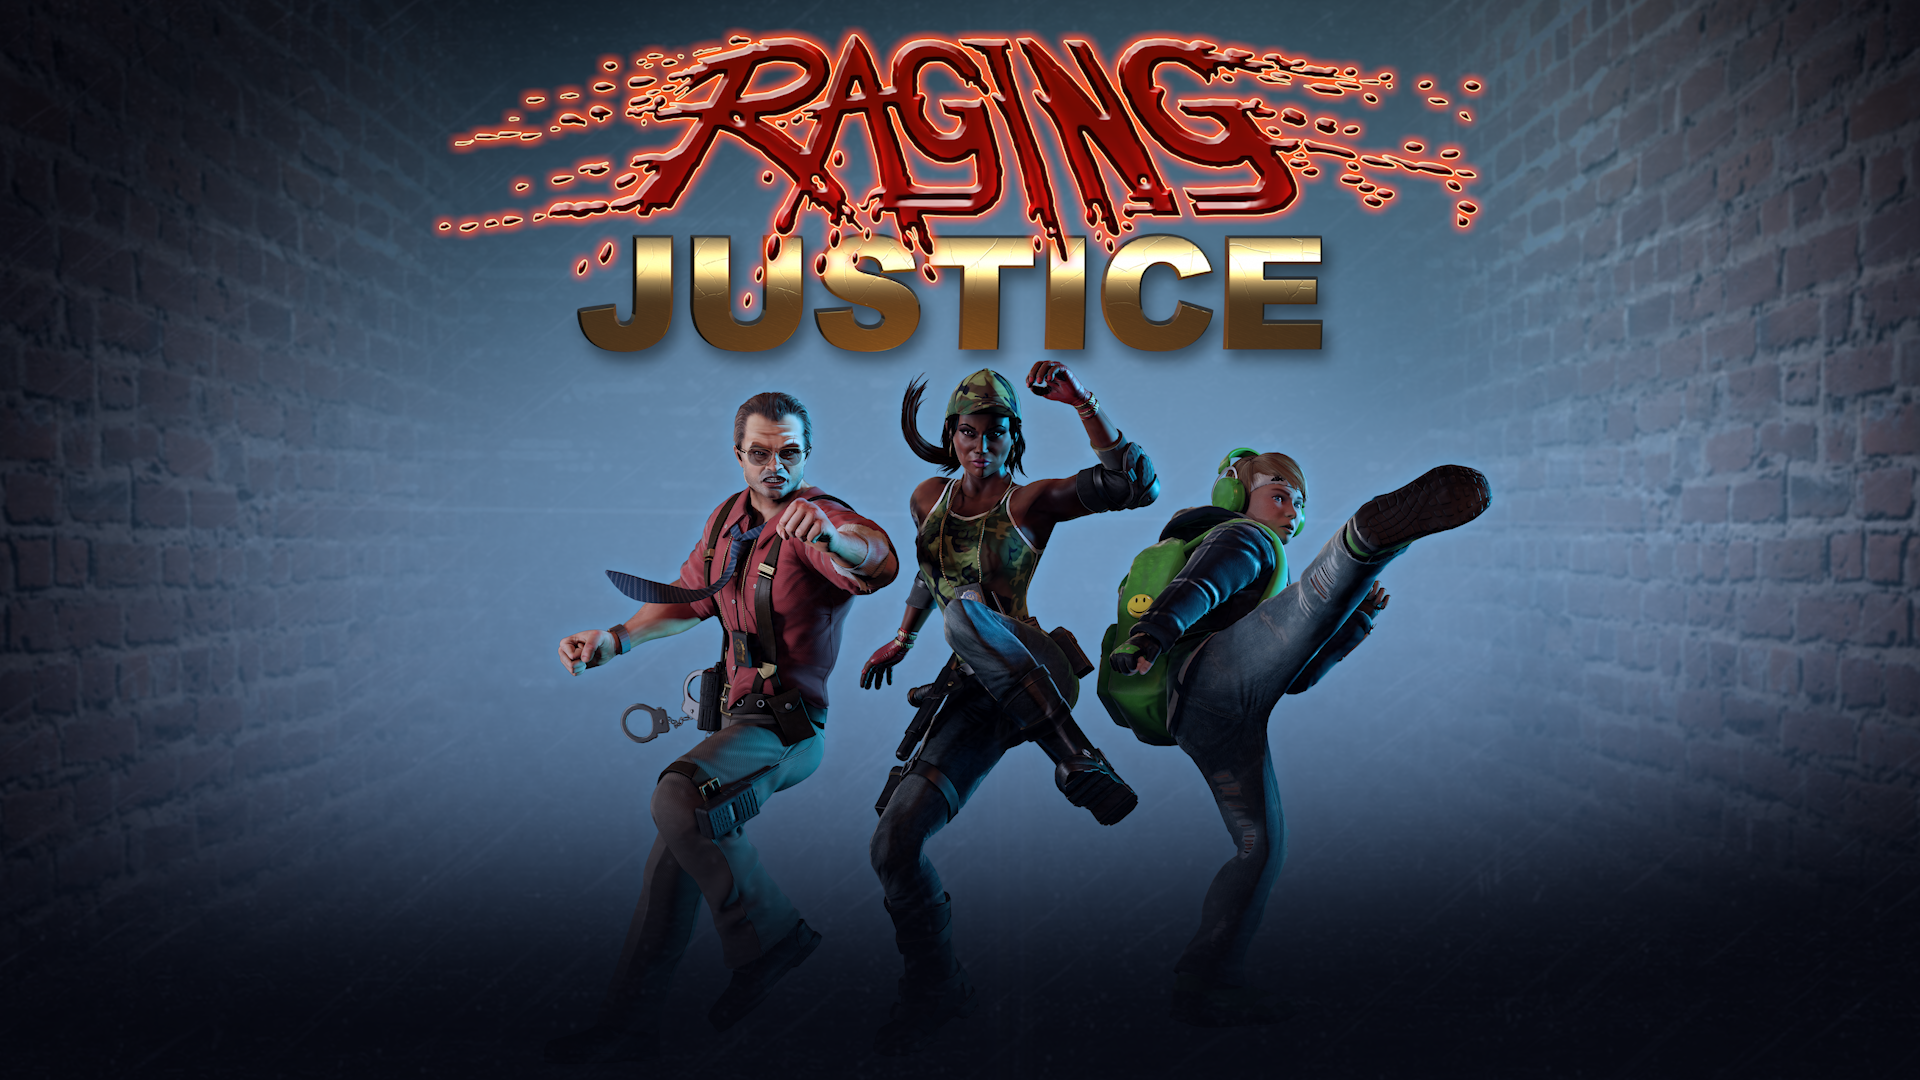 RAGING JUSTICE – High Score Contest